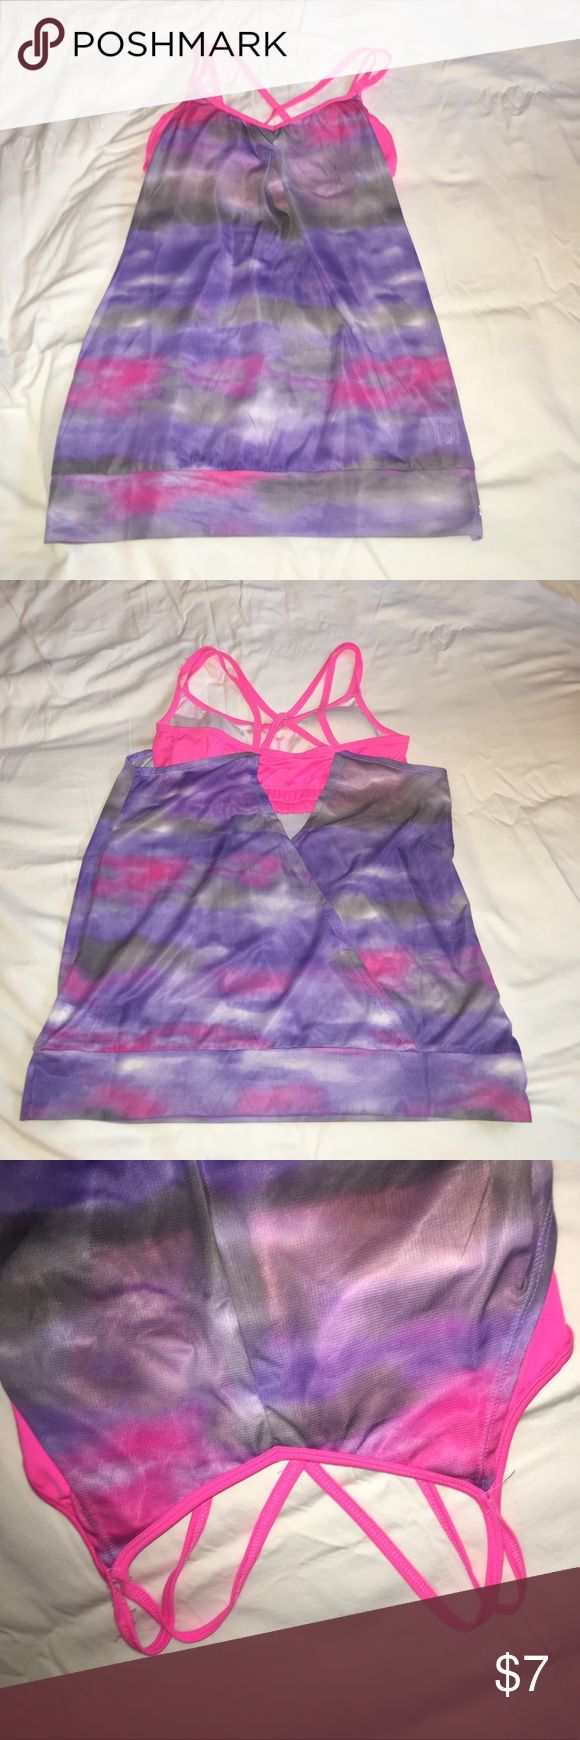 Strappy pink and purple tye dye workout top Mesh purple/pink tye dye fitness top with strappy pink attached bra RBX Tops Tank Tops